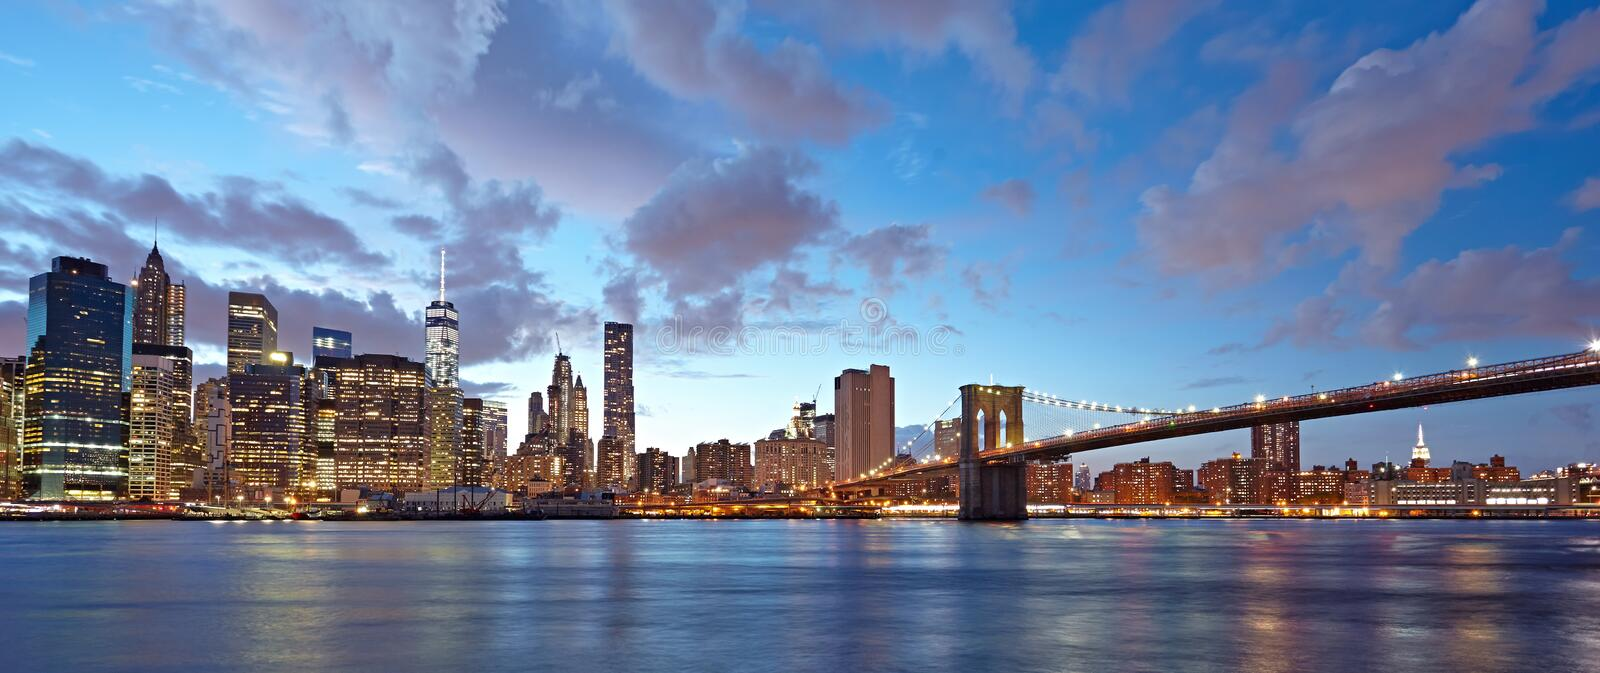 New York City Panorama at night. Manhattan and Brooklyn Bridge at night. royalty free stock photography